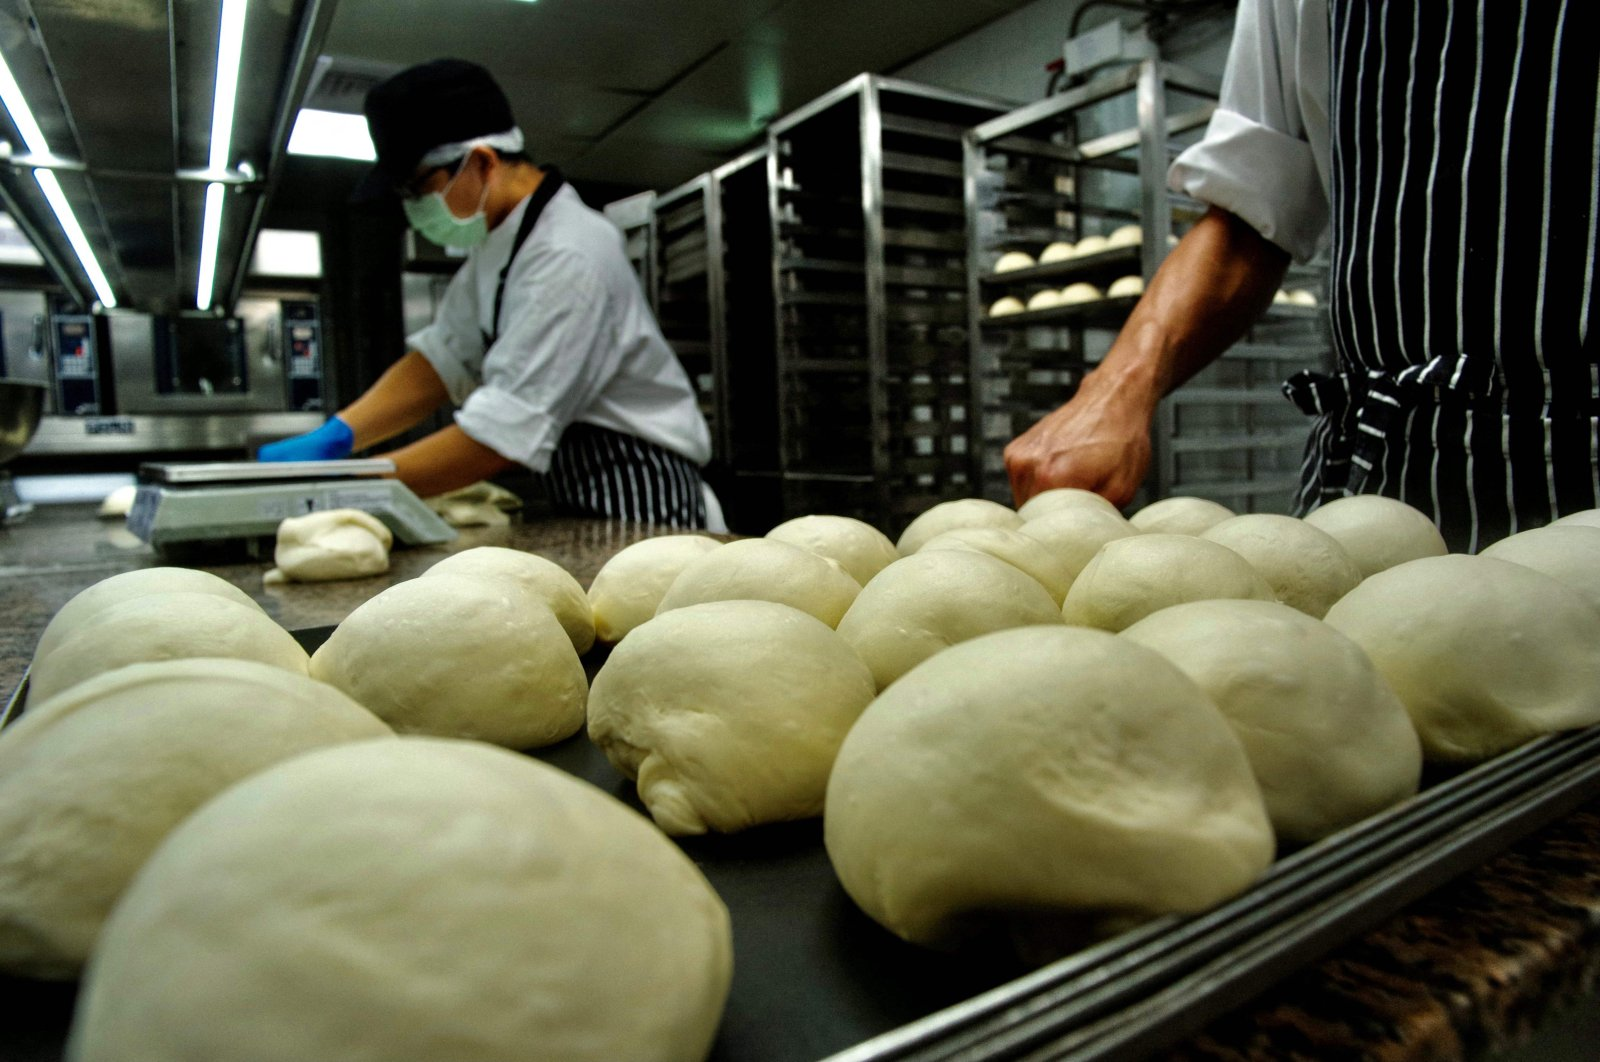 """Employees from Taiwan company Just Kitchen, a network of """"ghost kitchens"""" that make delivery-only food, preparing to bake bread for takeaway meals at one of their locations in Taipei, Taiwan, Aug. 18, 2021. (Sam Yeh / AFP Photo)"""